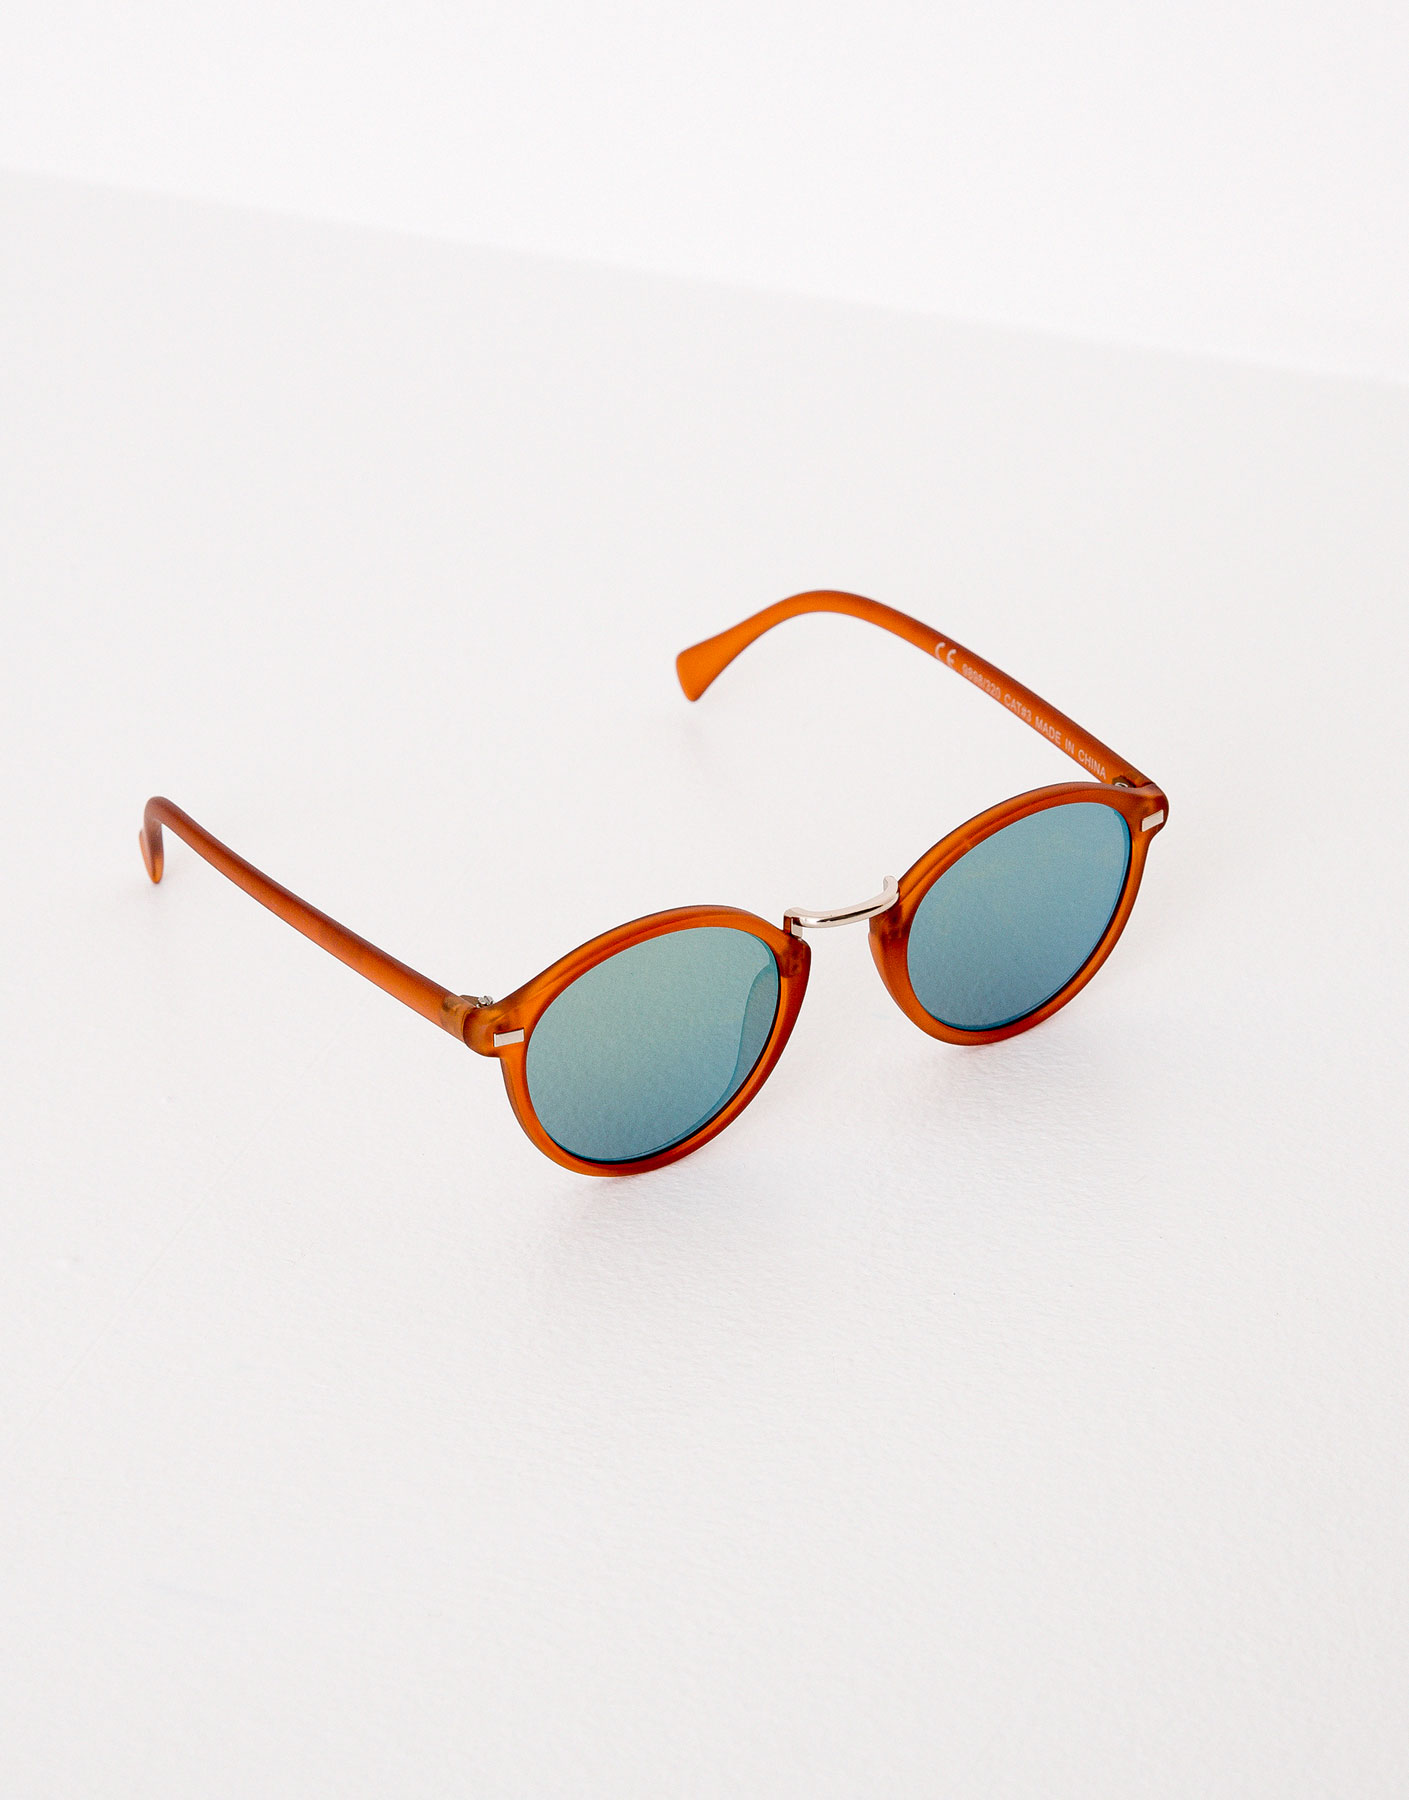 Toffee frame sunglasses